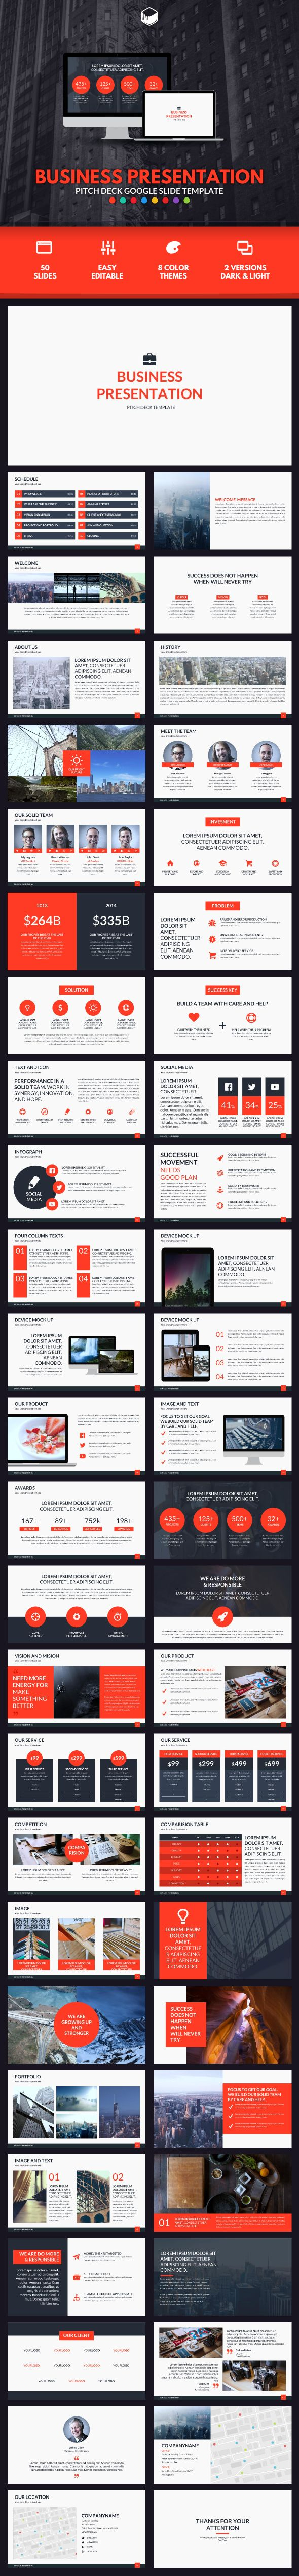 Business Presentation - Pitch Deck Google Slide Template #design Download: http://graphicriver.net/item/business-presentation-pitch-deck-google-slide-template/14376118?ref=ksioks